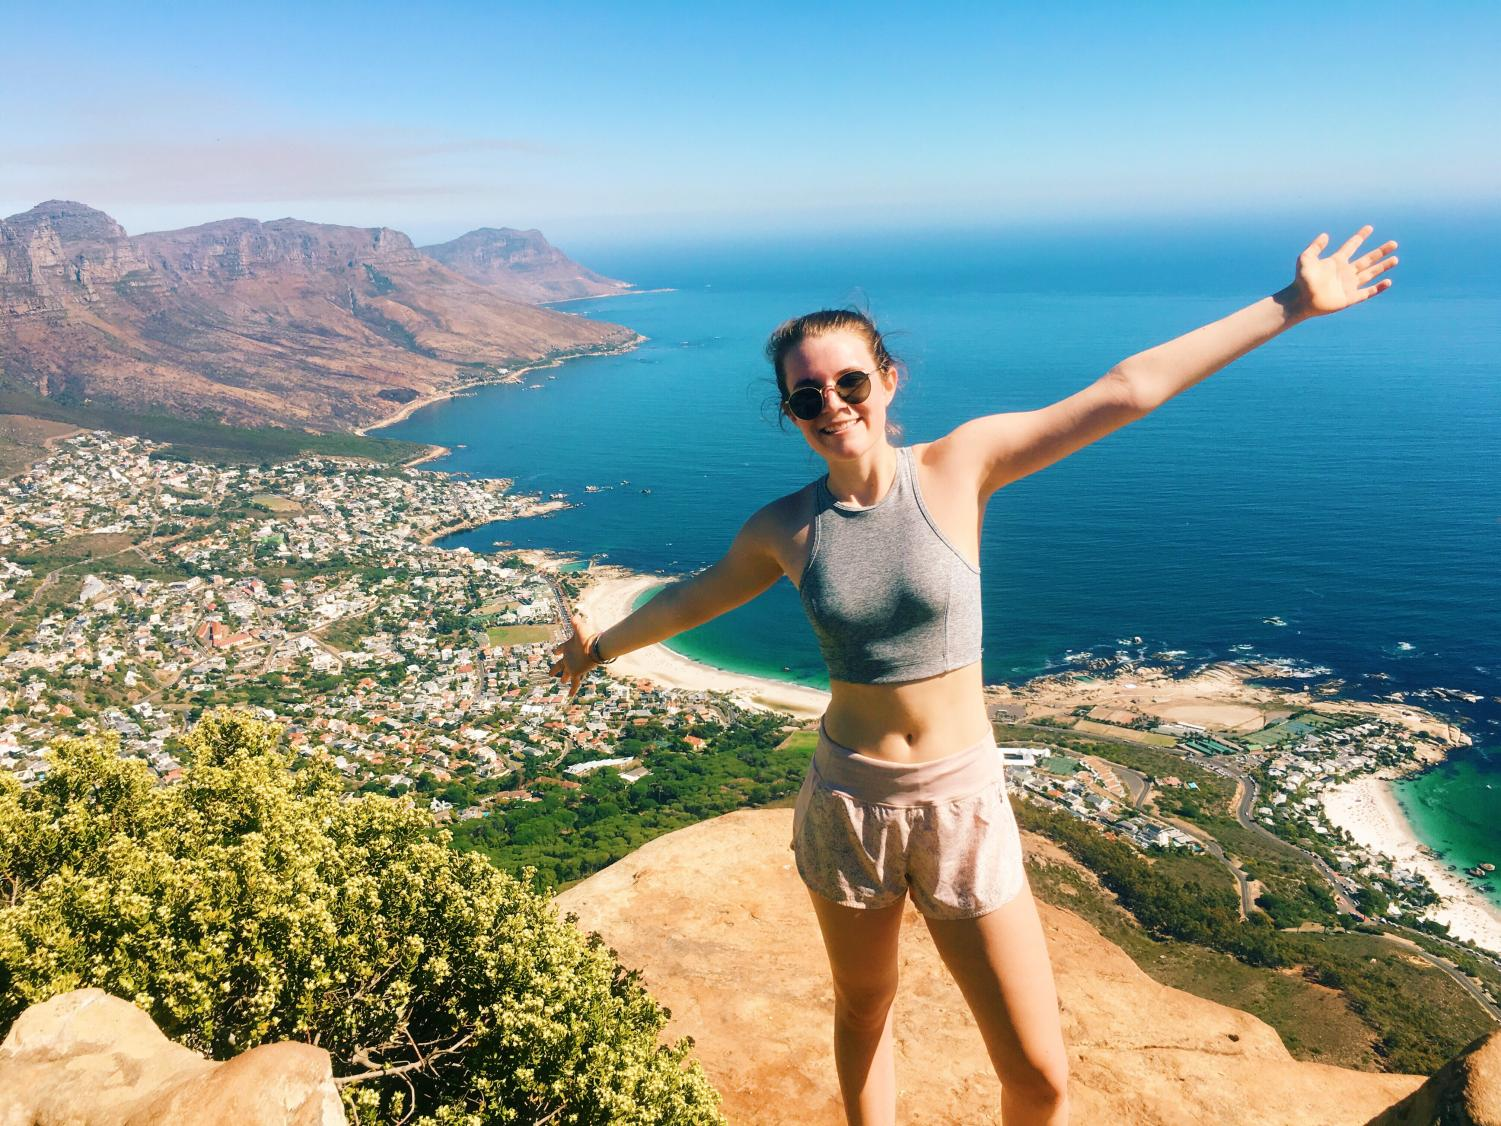 On our first day in South Africa, my family climbed up Lion's Head Mountain, which boasted amazing views of the beaches below.